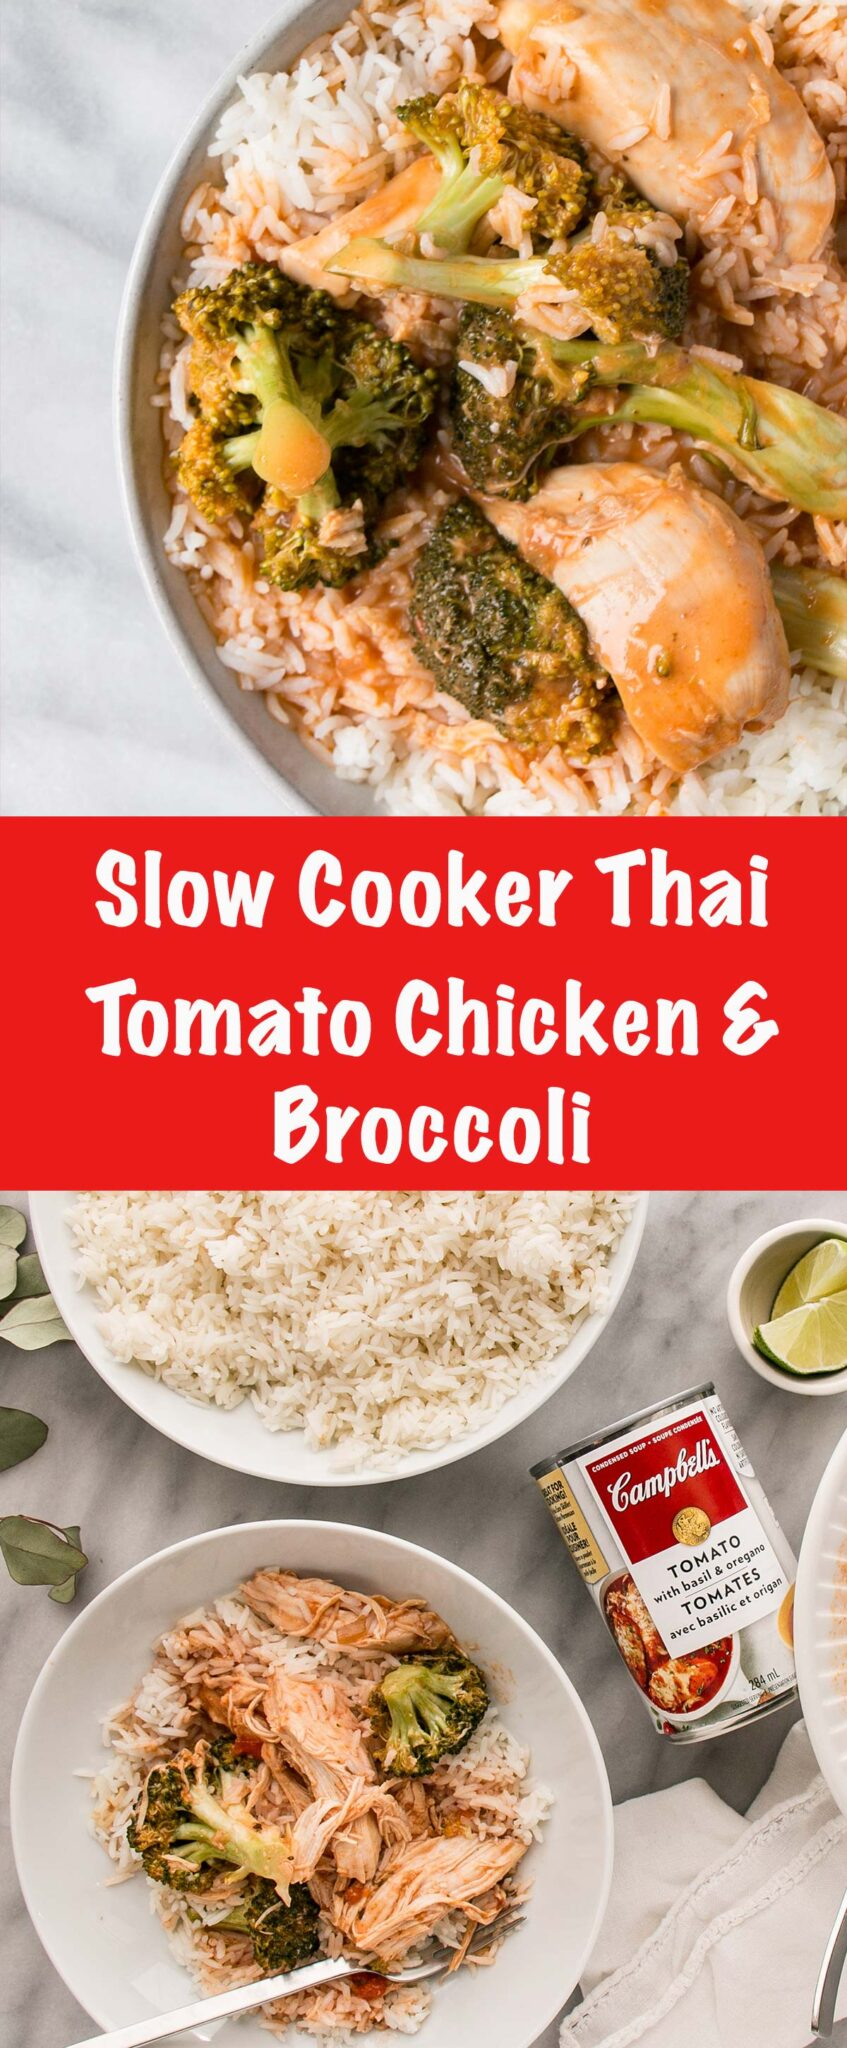 Slow Cooker Thai Tomato Chicken and Broccoli is a 5 minute prep and walk away dinner that will satisfy even the pickiest of eaters! #ad #windinner #slowcooker #chicken